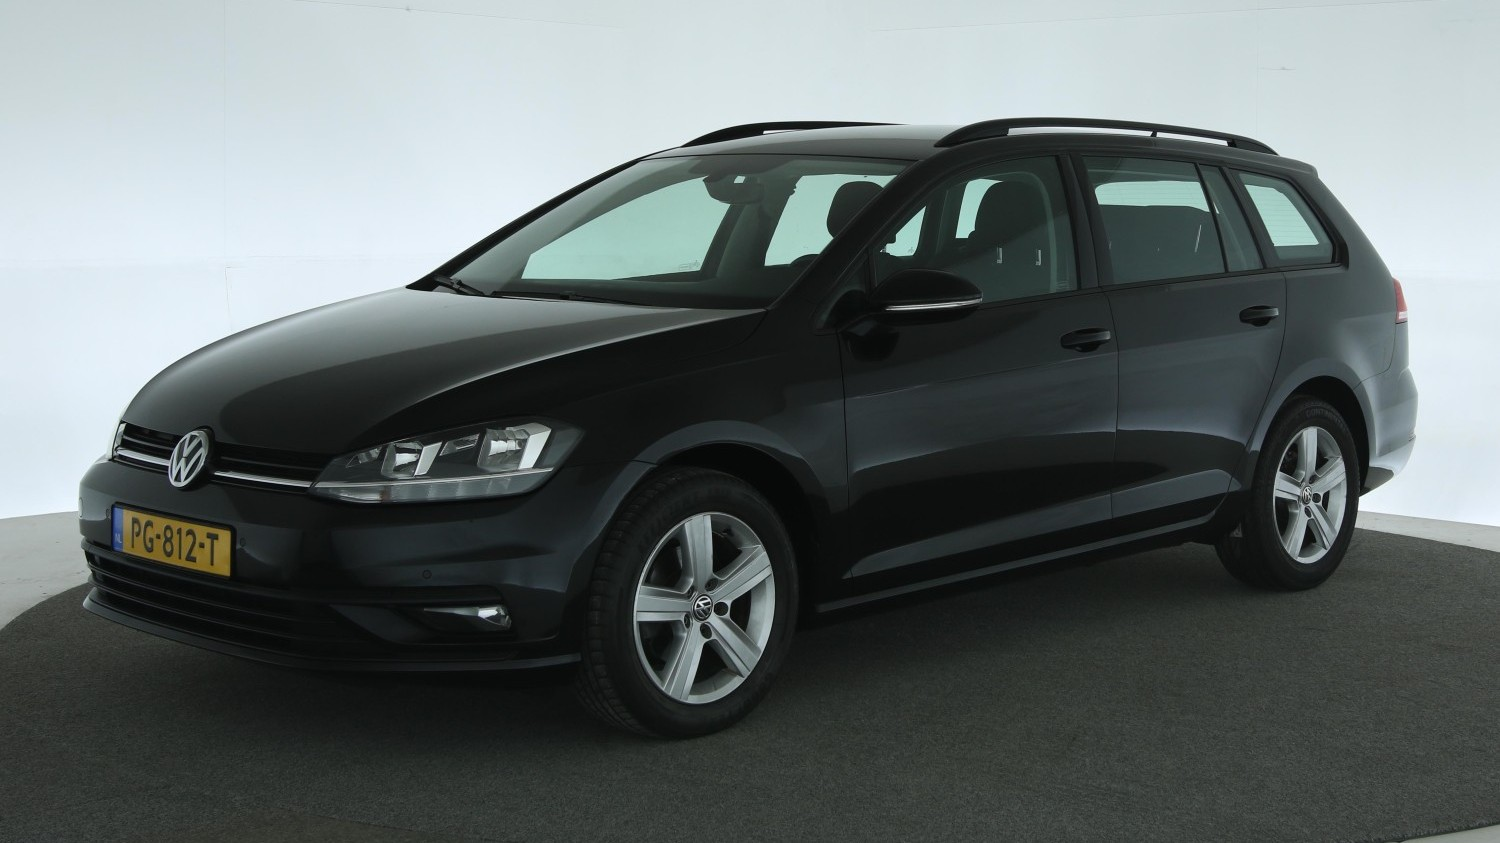 Volkswagen Golf Station 2017 PG-812-T 1